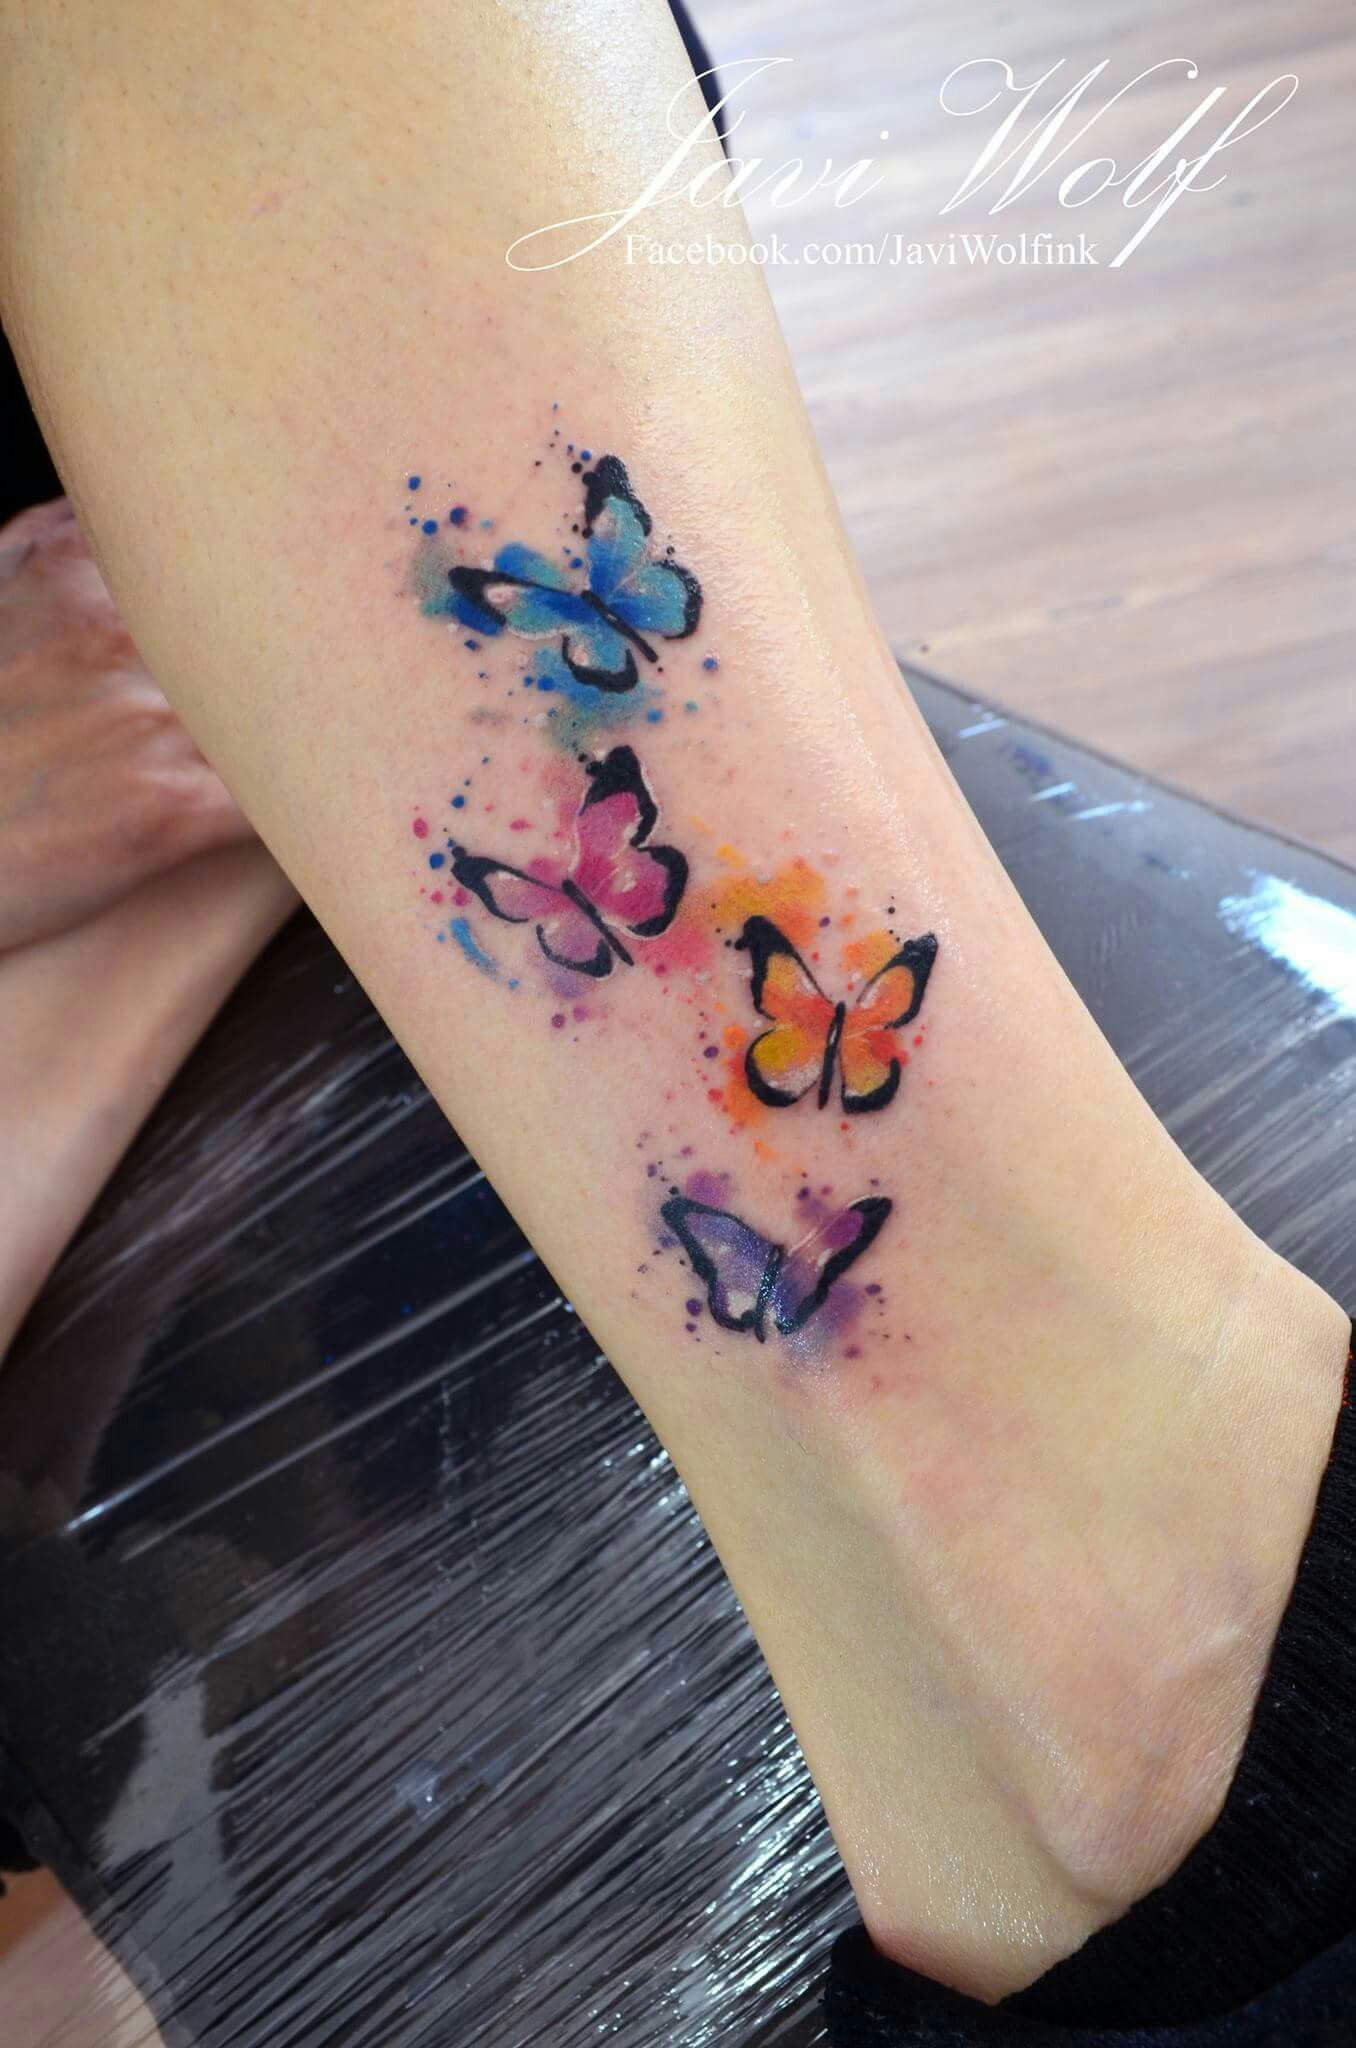 javi wolf watercolor butterflies tatoo tattoo ideen aquarell tattoo und schmetterling tattoo. Black Bedroom Furniture Sets. Home Design Ideas